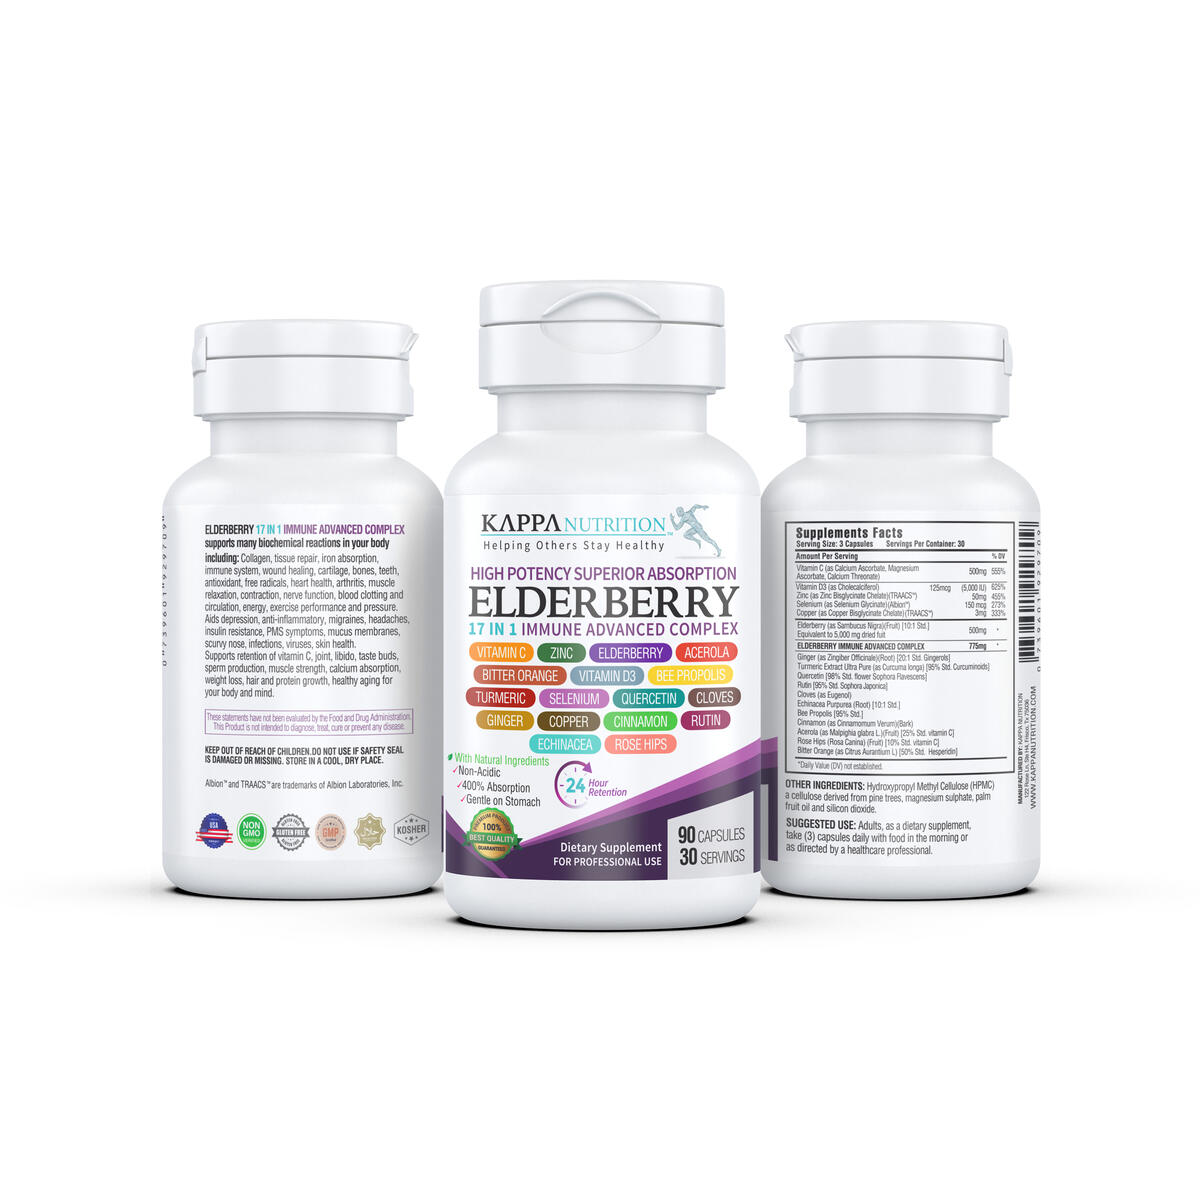 (90 Capsules), 17 in 1 High Potency Immune Support, Elderberry 5,000mg, Vitamin C 500mg, Zinc 50mg, Vitamin D3 5,000iu, Echinacea, Bee Propolis, Turmeric, Ginger, Elderberry from Kappa Nutrition.